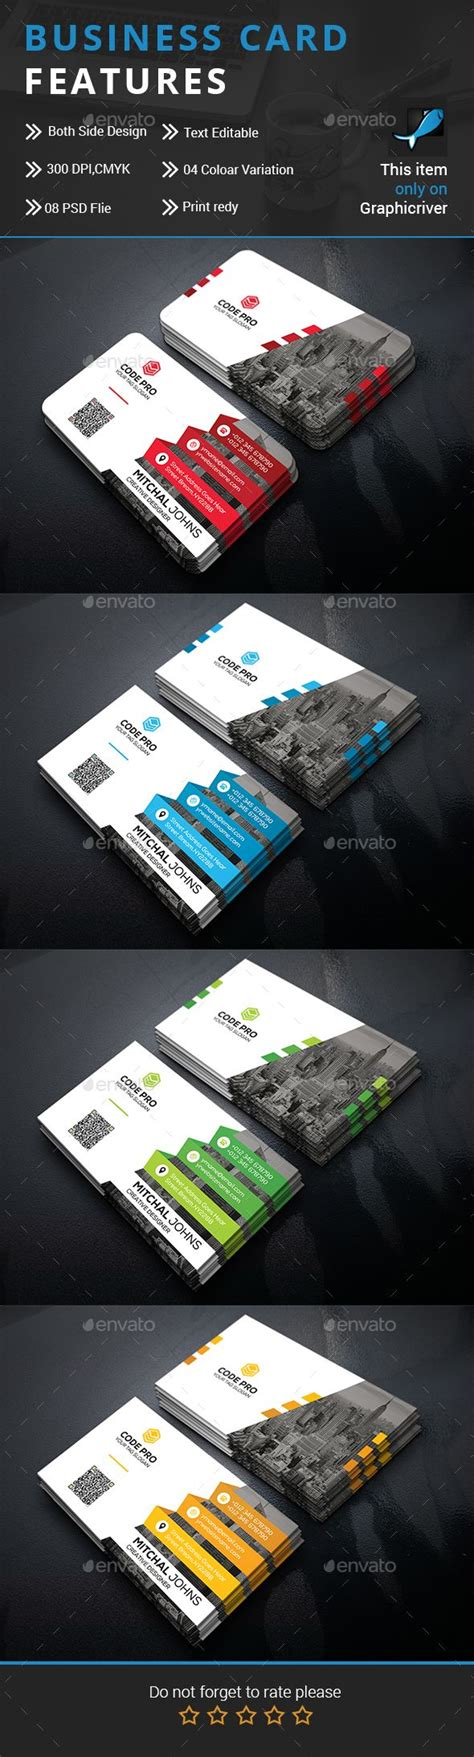 business card template psd download here https